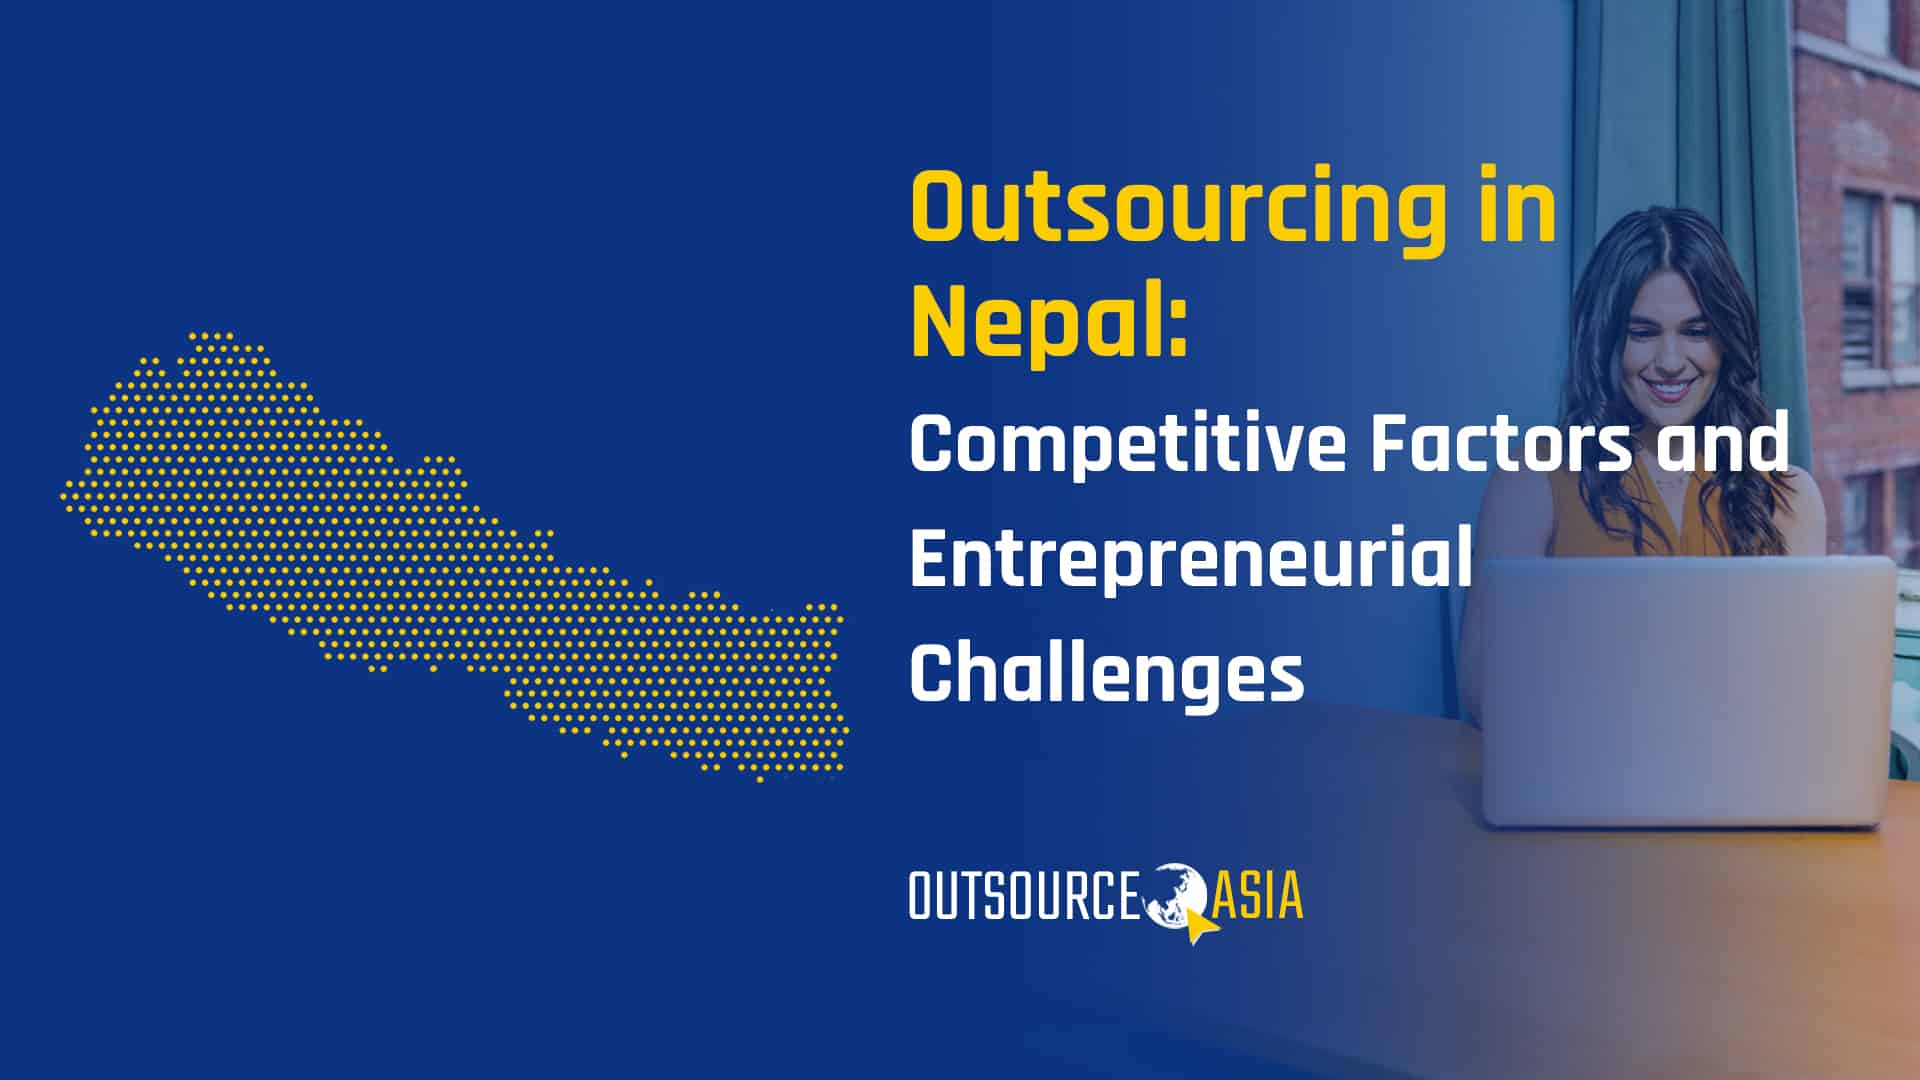 Outsourcing in Nepal